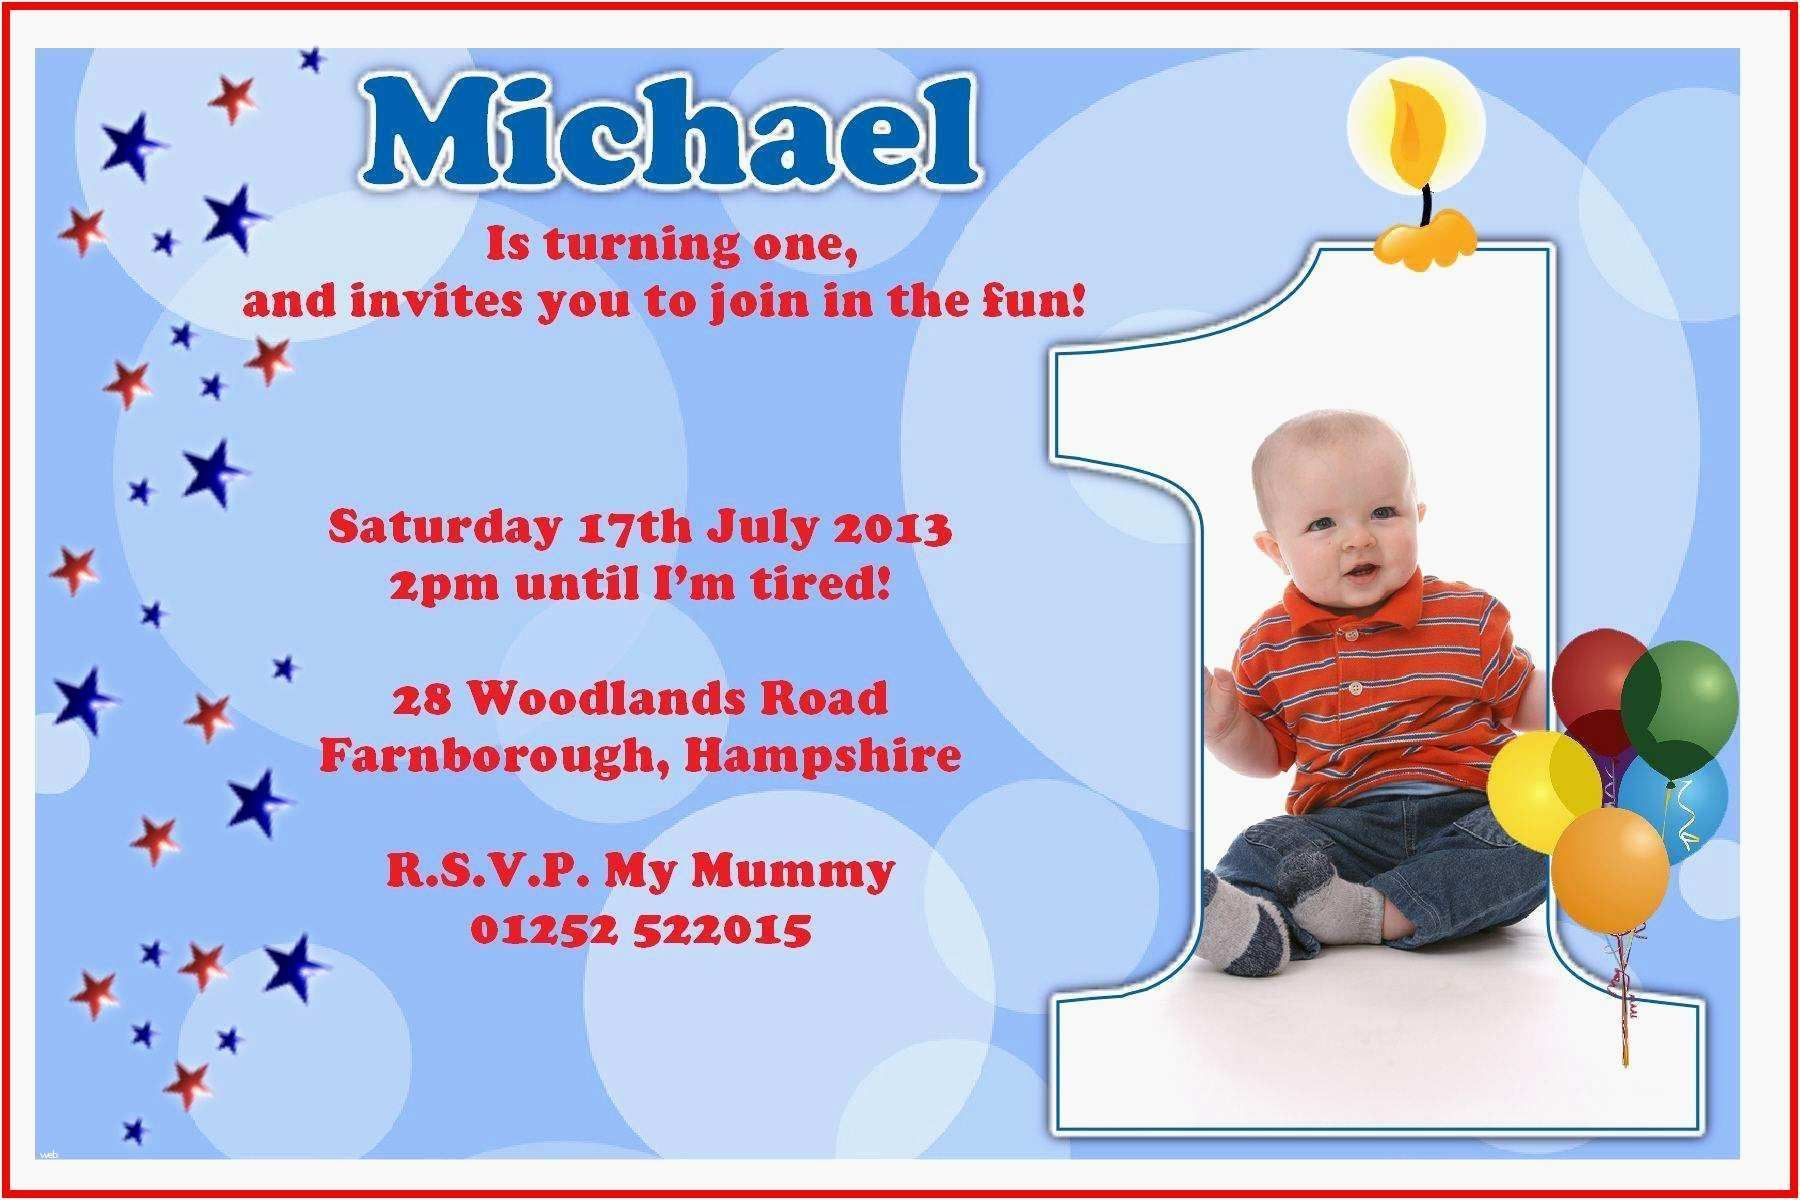 birthday party invitation wording india for 4 year old ideas Desig